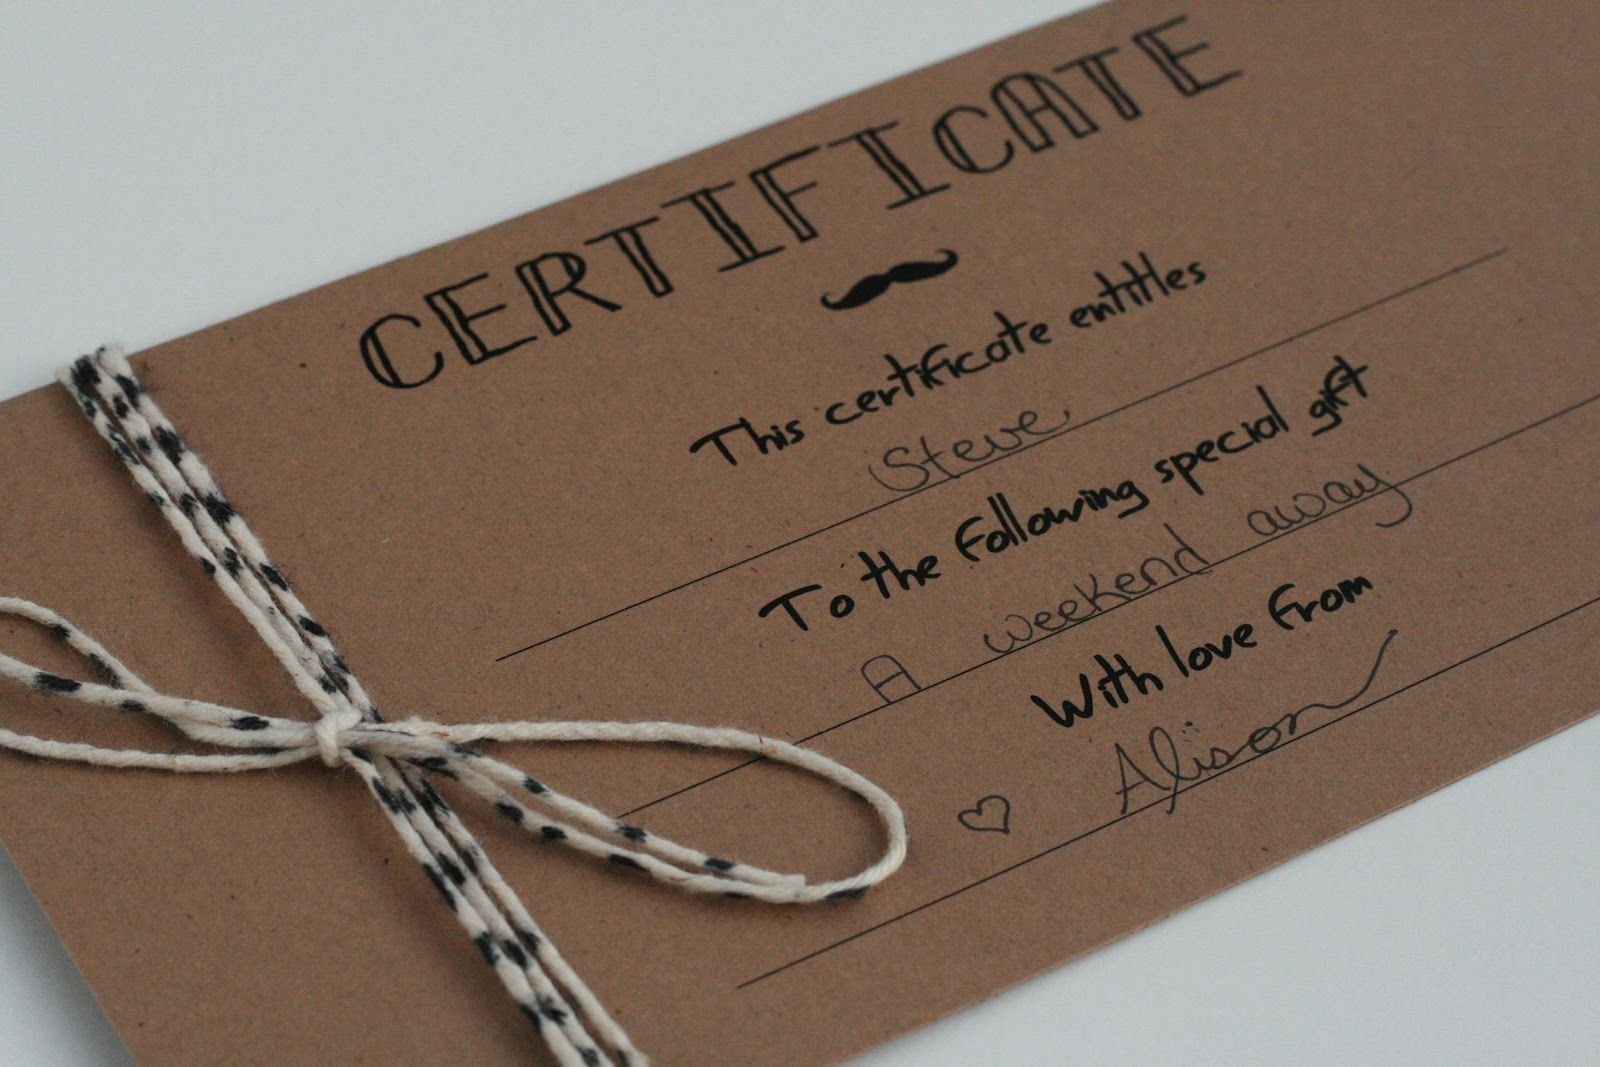 diy gift certificates template - Google Search | Yoga | Pinterest ...